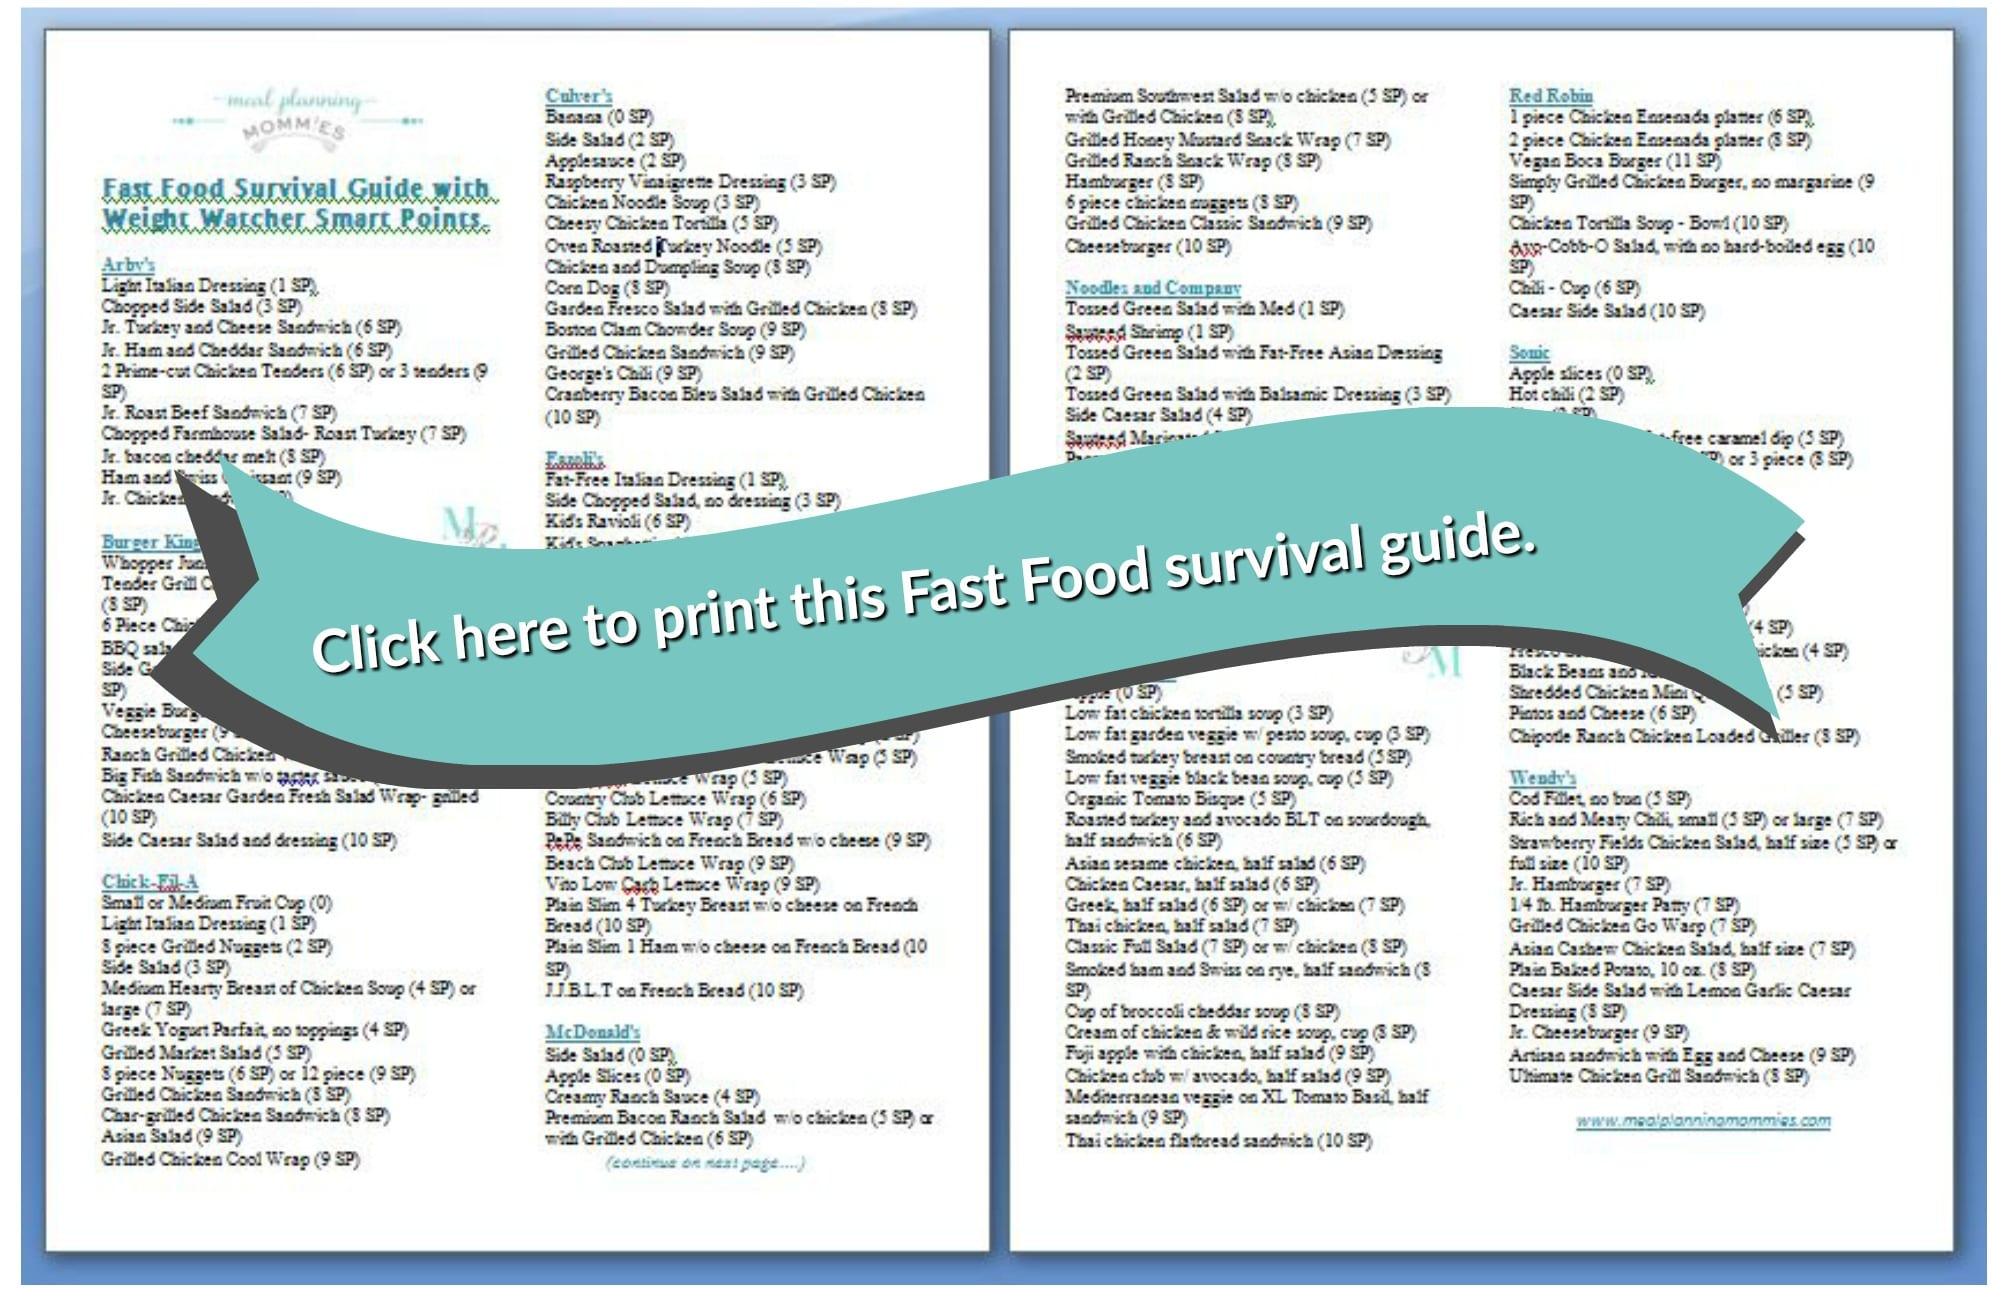 photograph relating to Weight Watchers Freestyle Food List Printable called Wise Instant Foods WITH Fat WATCHER Good Info (10 SP OR